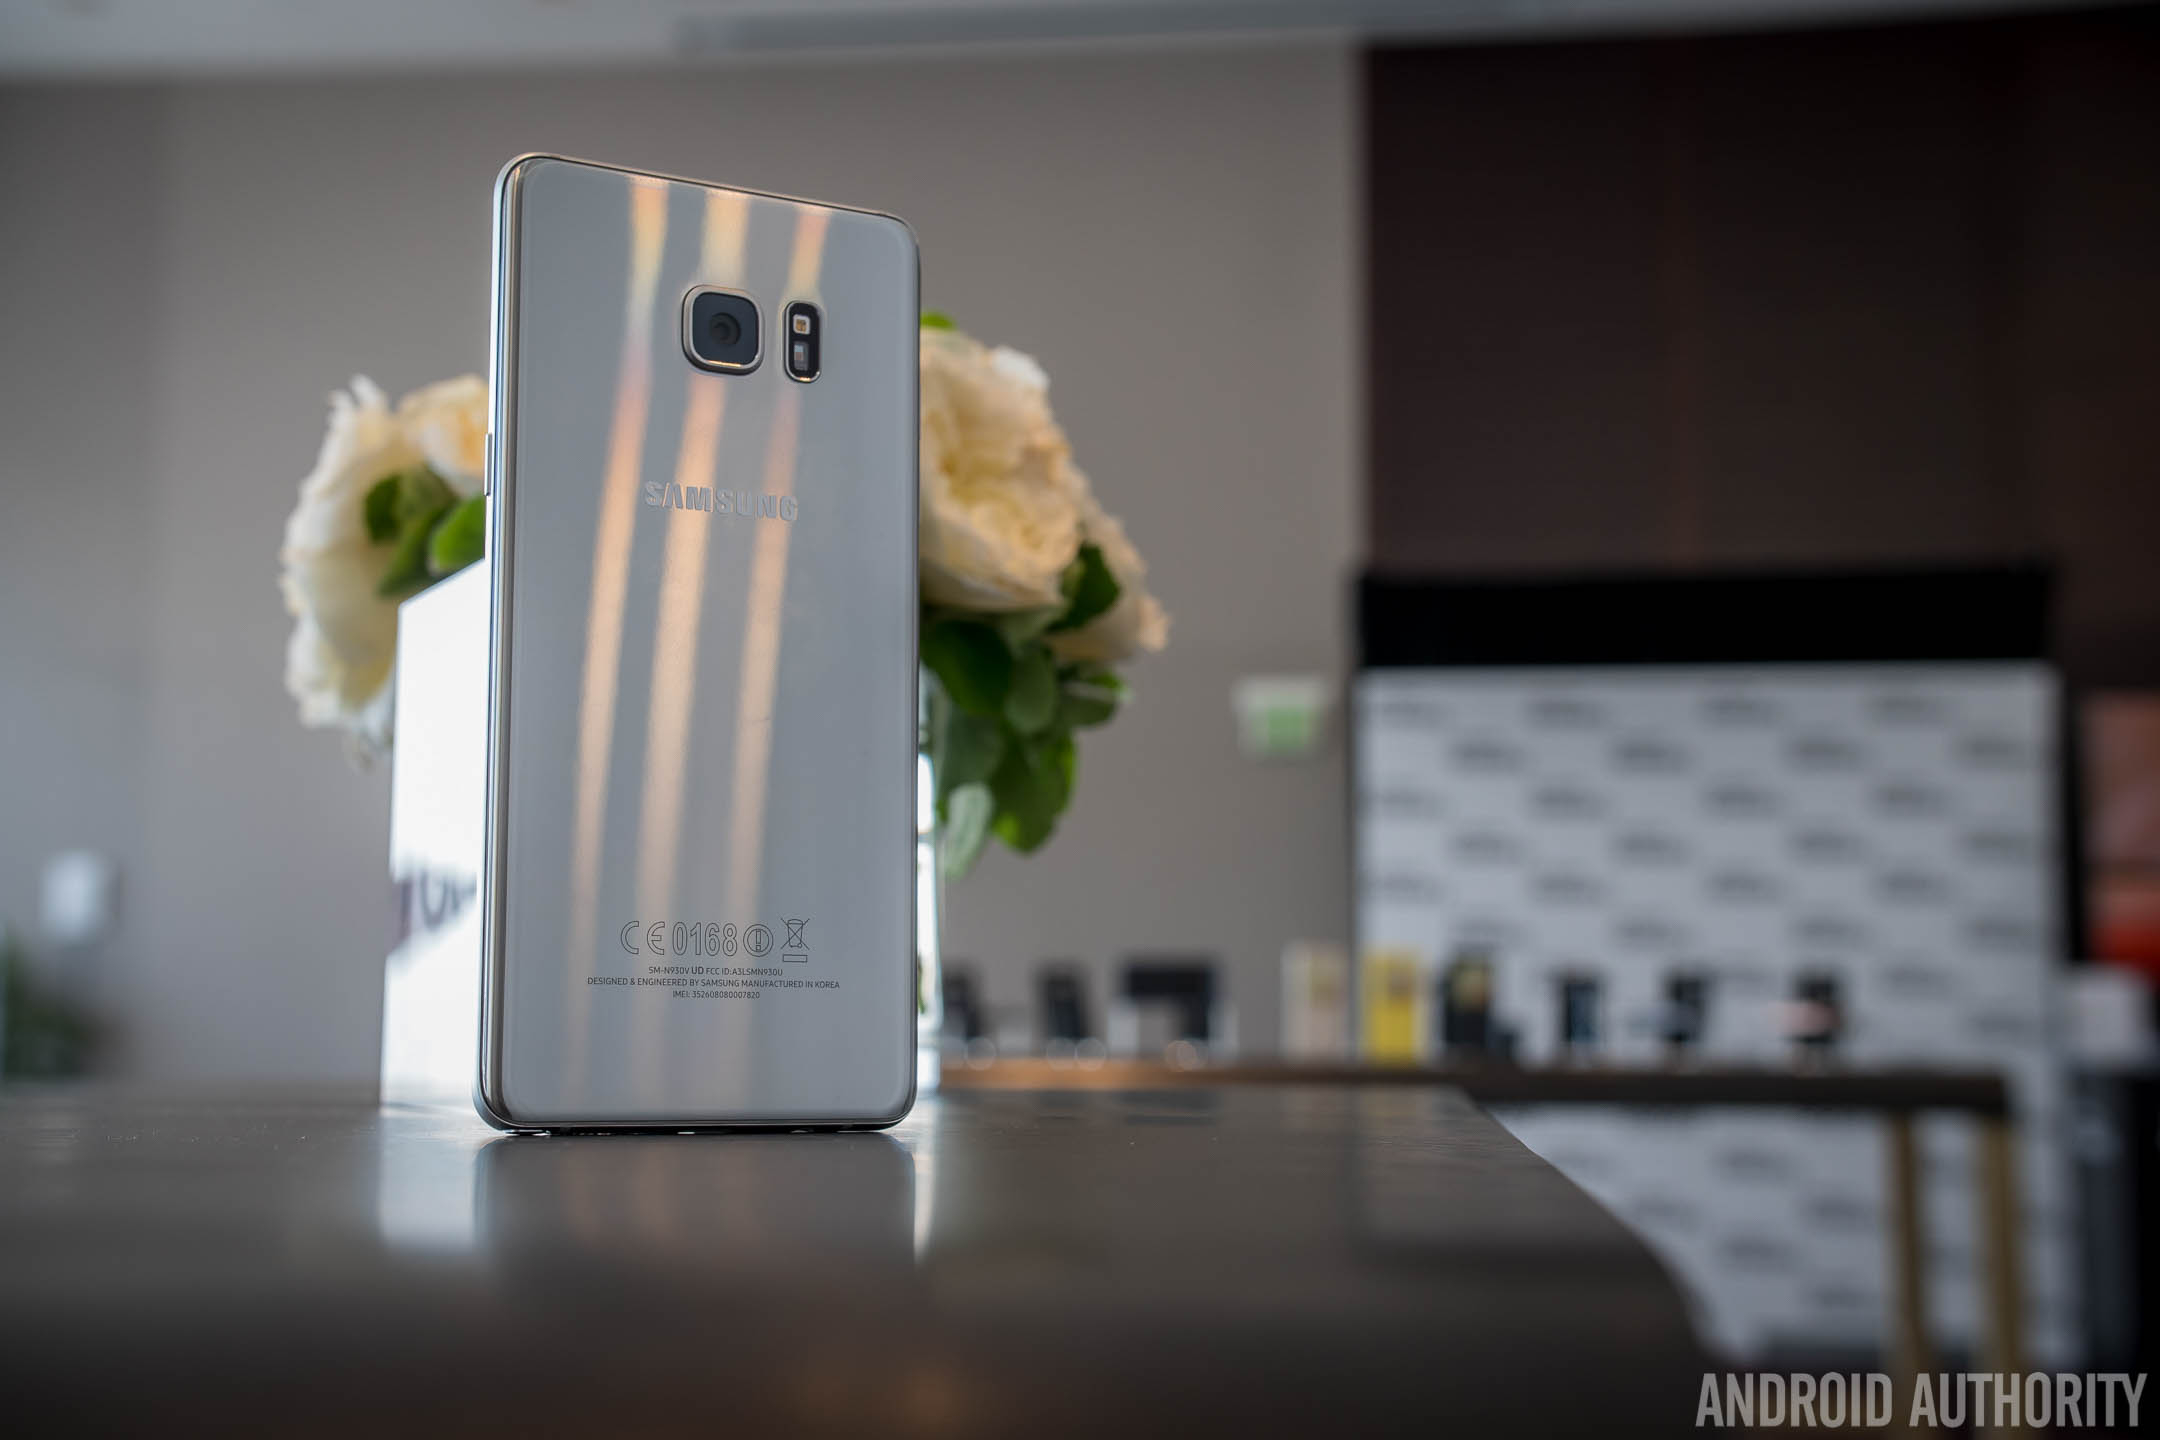 Samsung-Galaxy-Note-7-hands-on-first-batch-AA-(39-of-47)